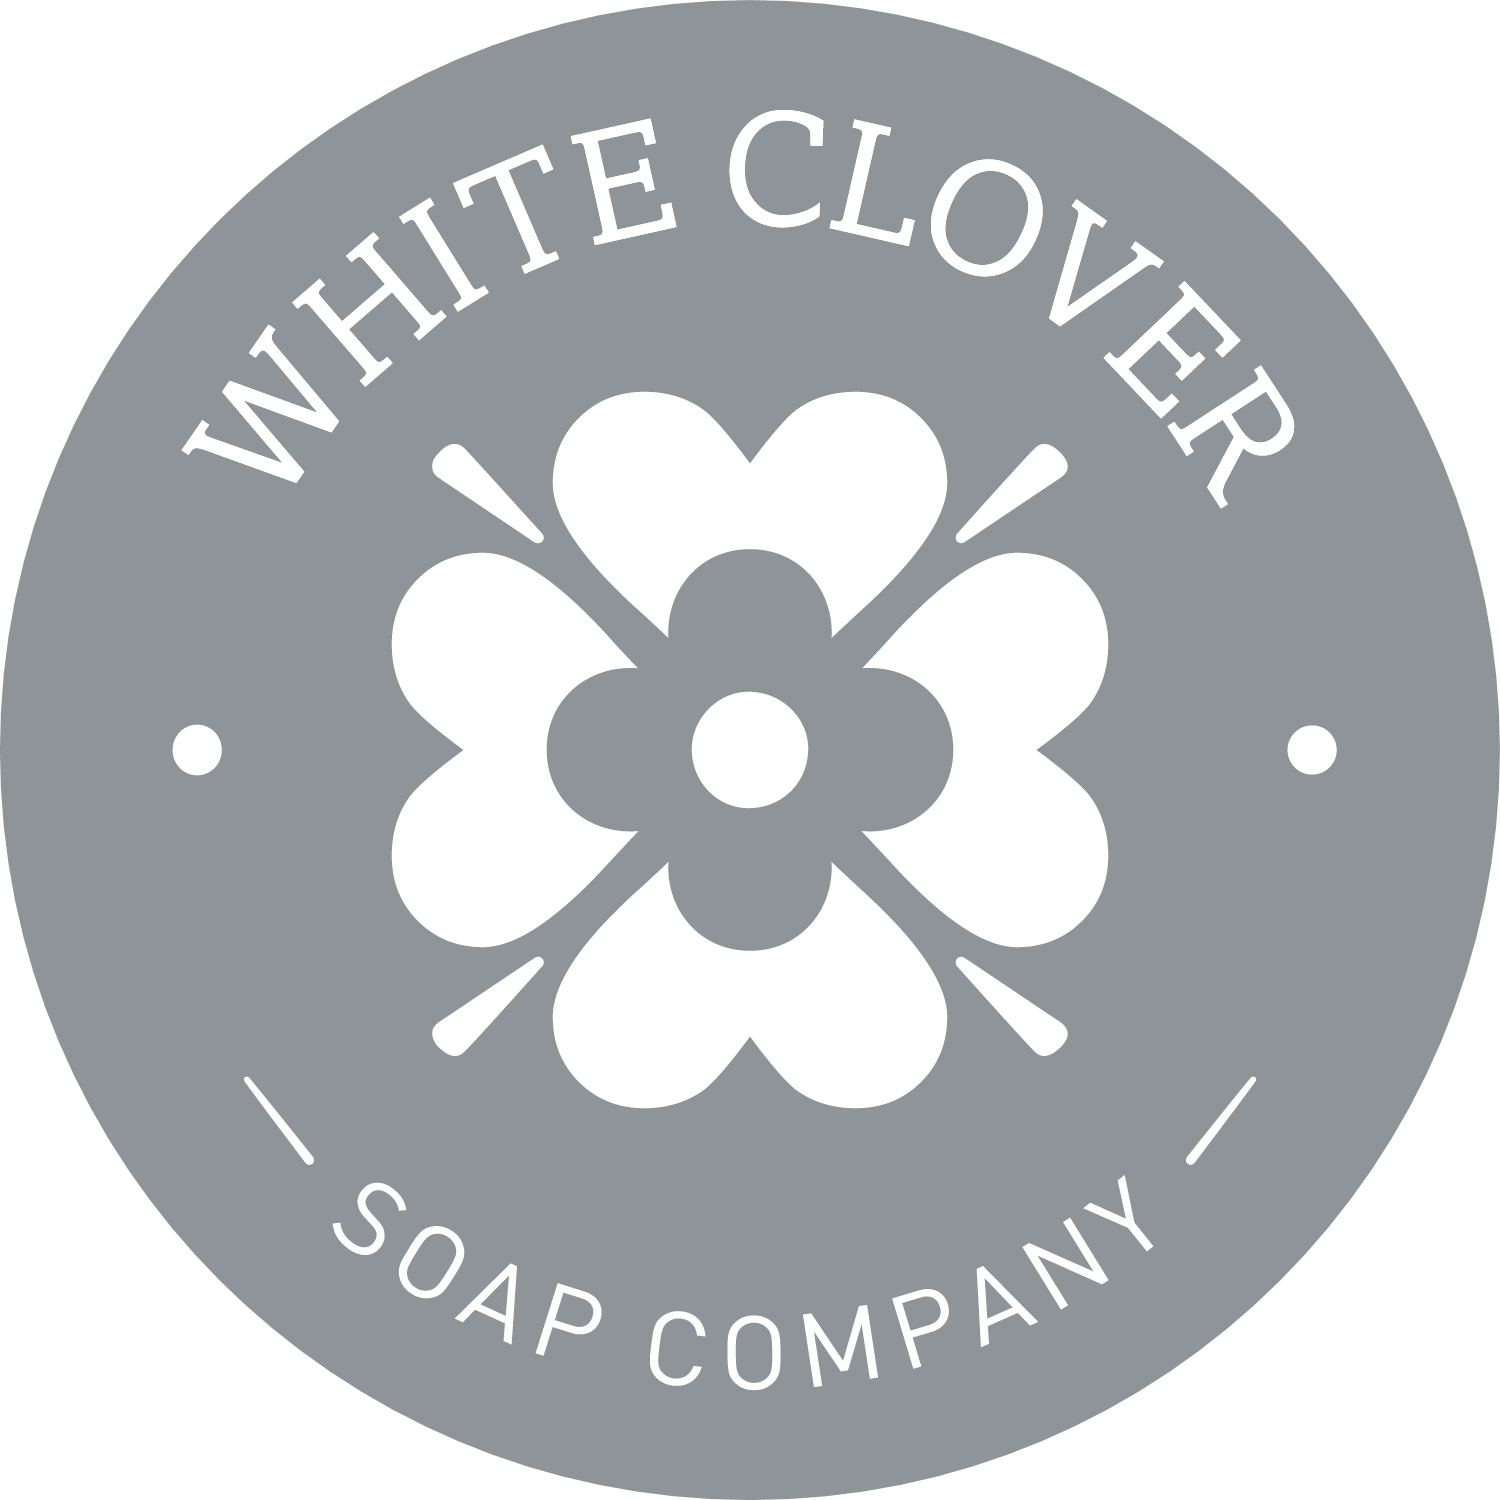 White Clover Soap logo - Business in Manotick